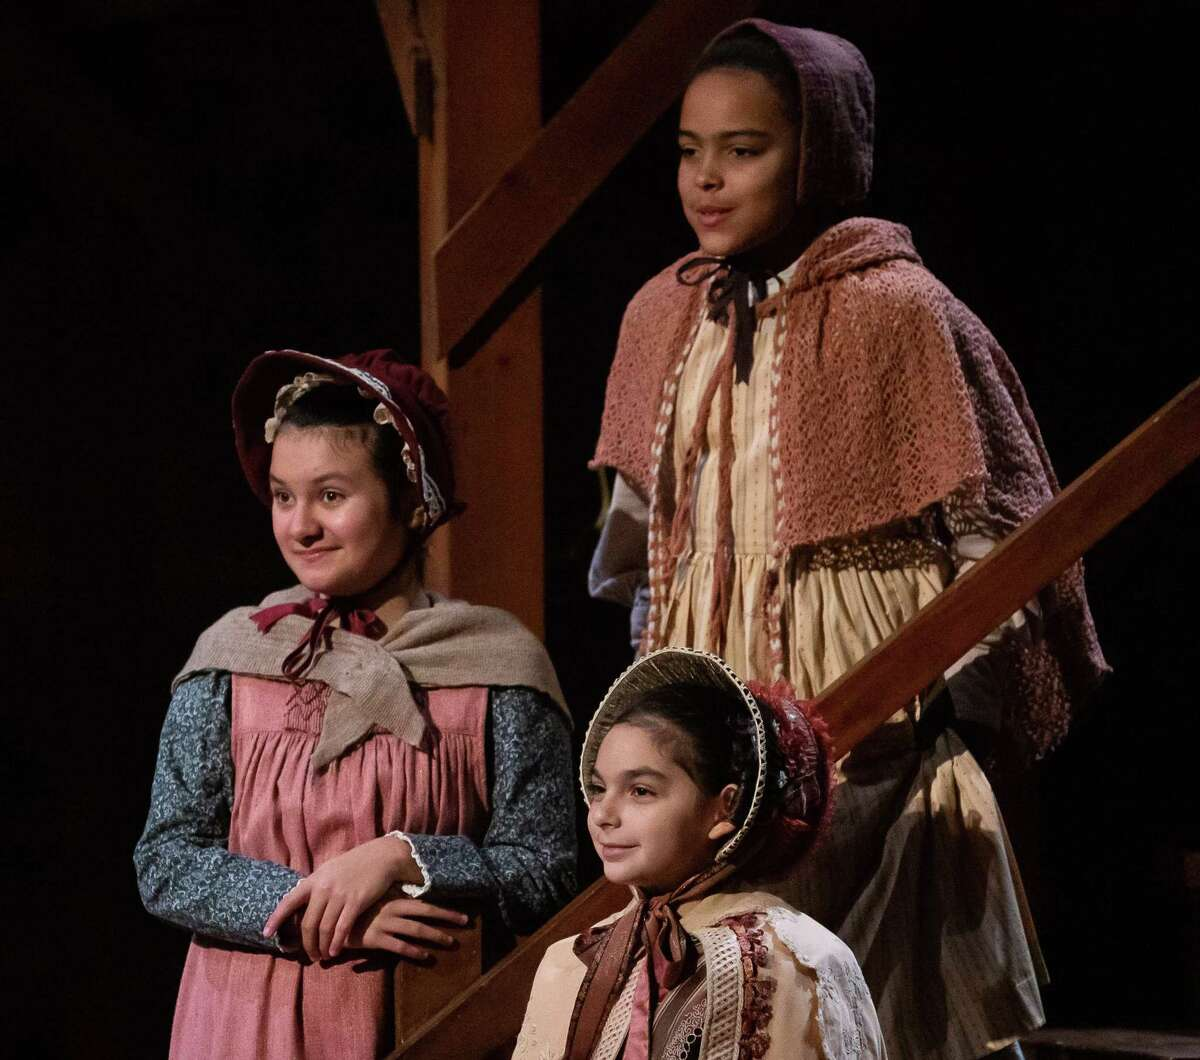 Pasadena resident Ava von Kanel, left, is in her second season performing the Alley Theatre's annual production of